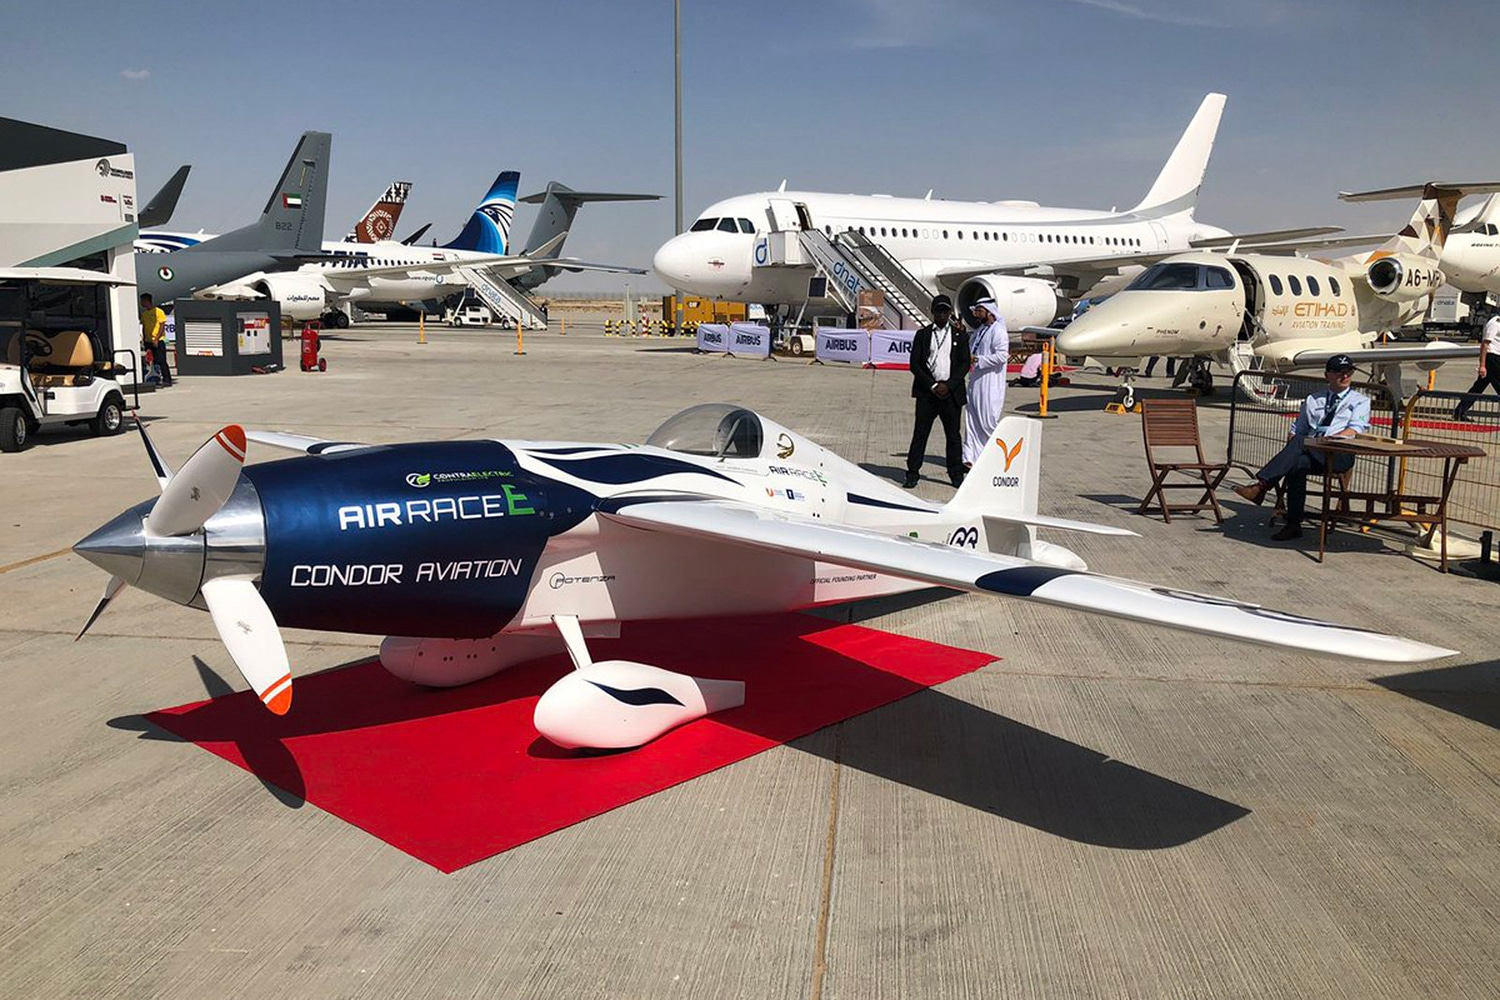 Air Race E launches an all-electric racing aircraft